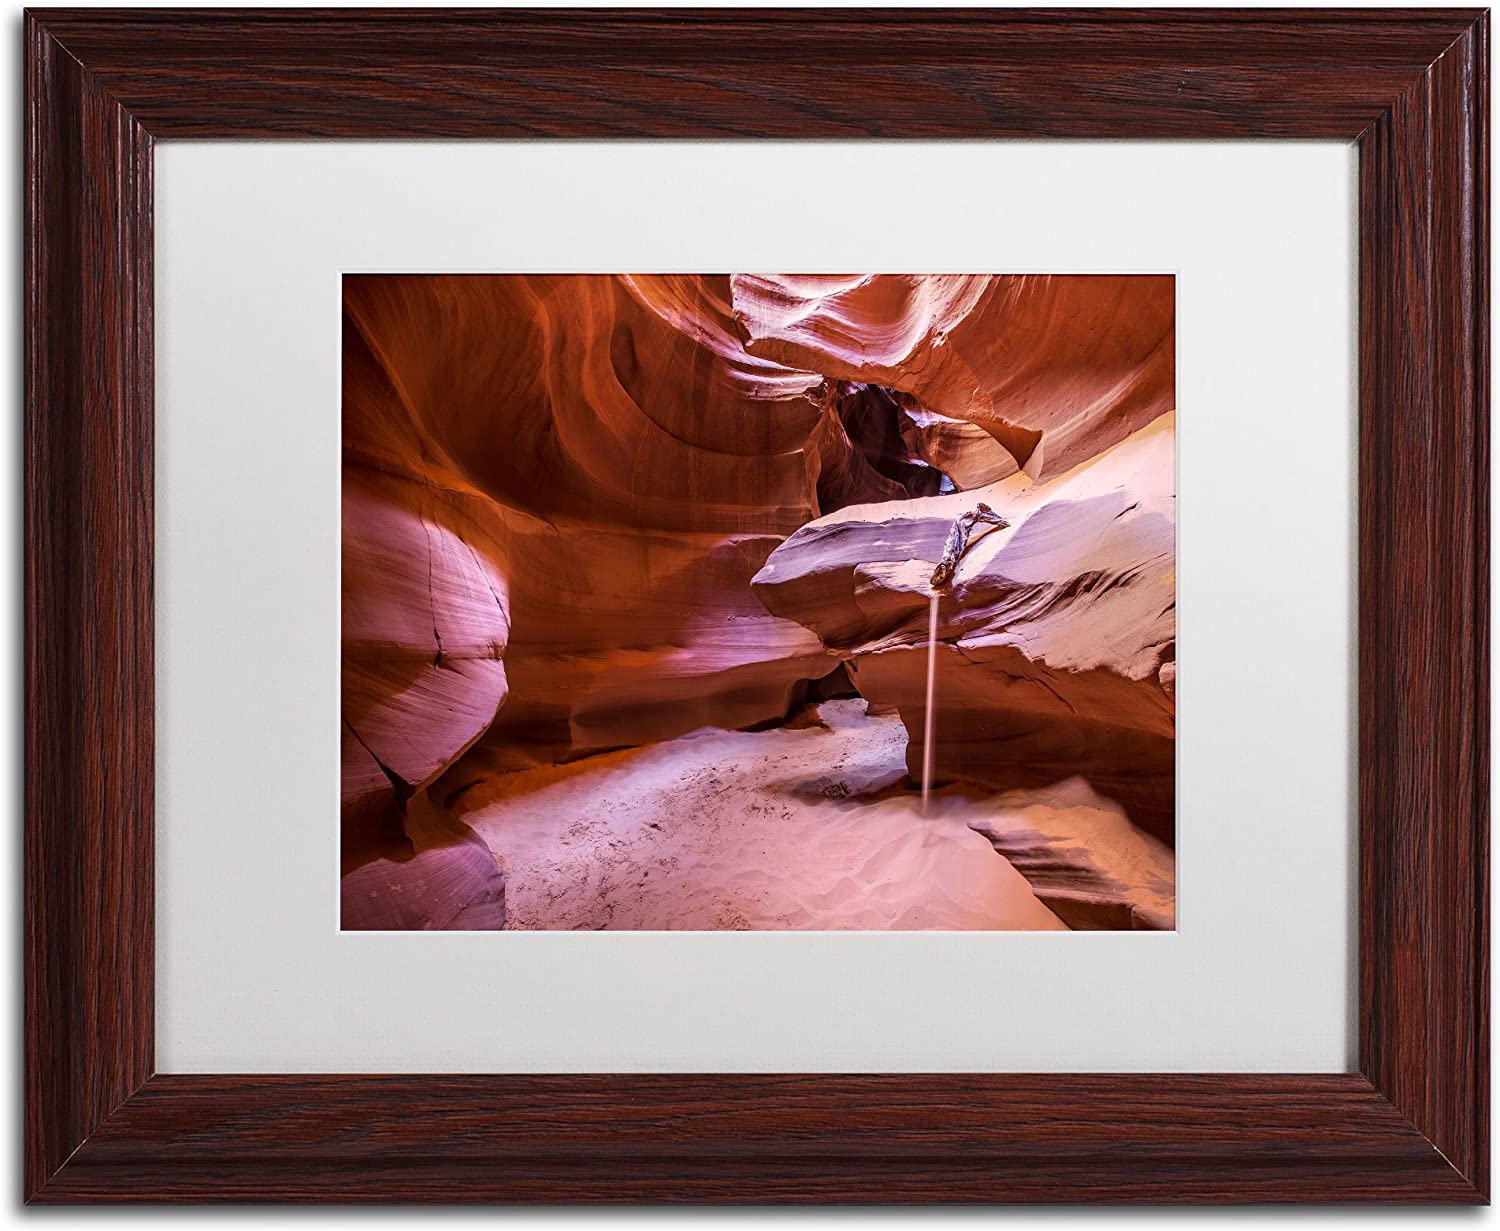 Trademark Fine Art Weeping Sand Art by Pierre Leclerc in Wood Frame, 11 by 14Inch, White Matte